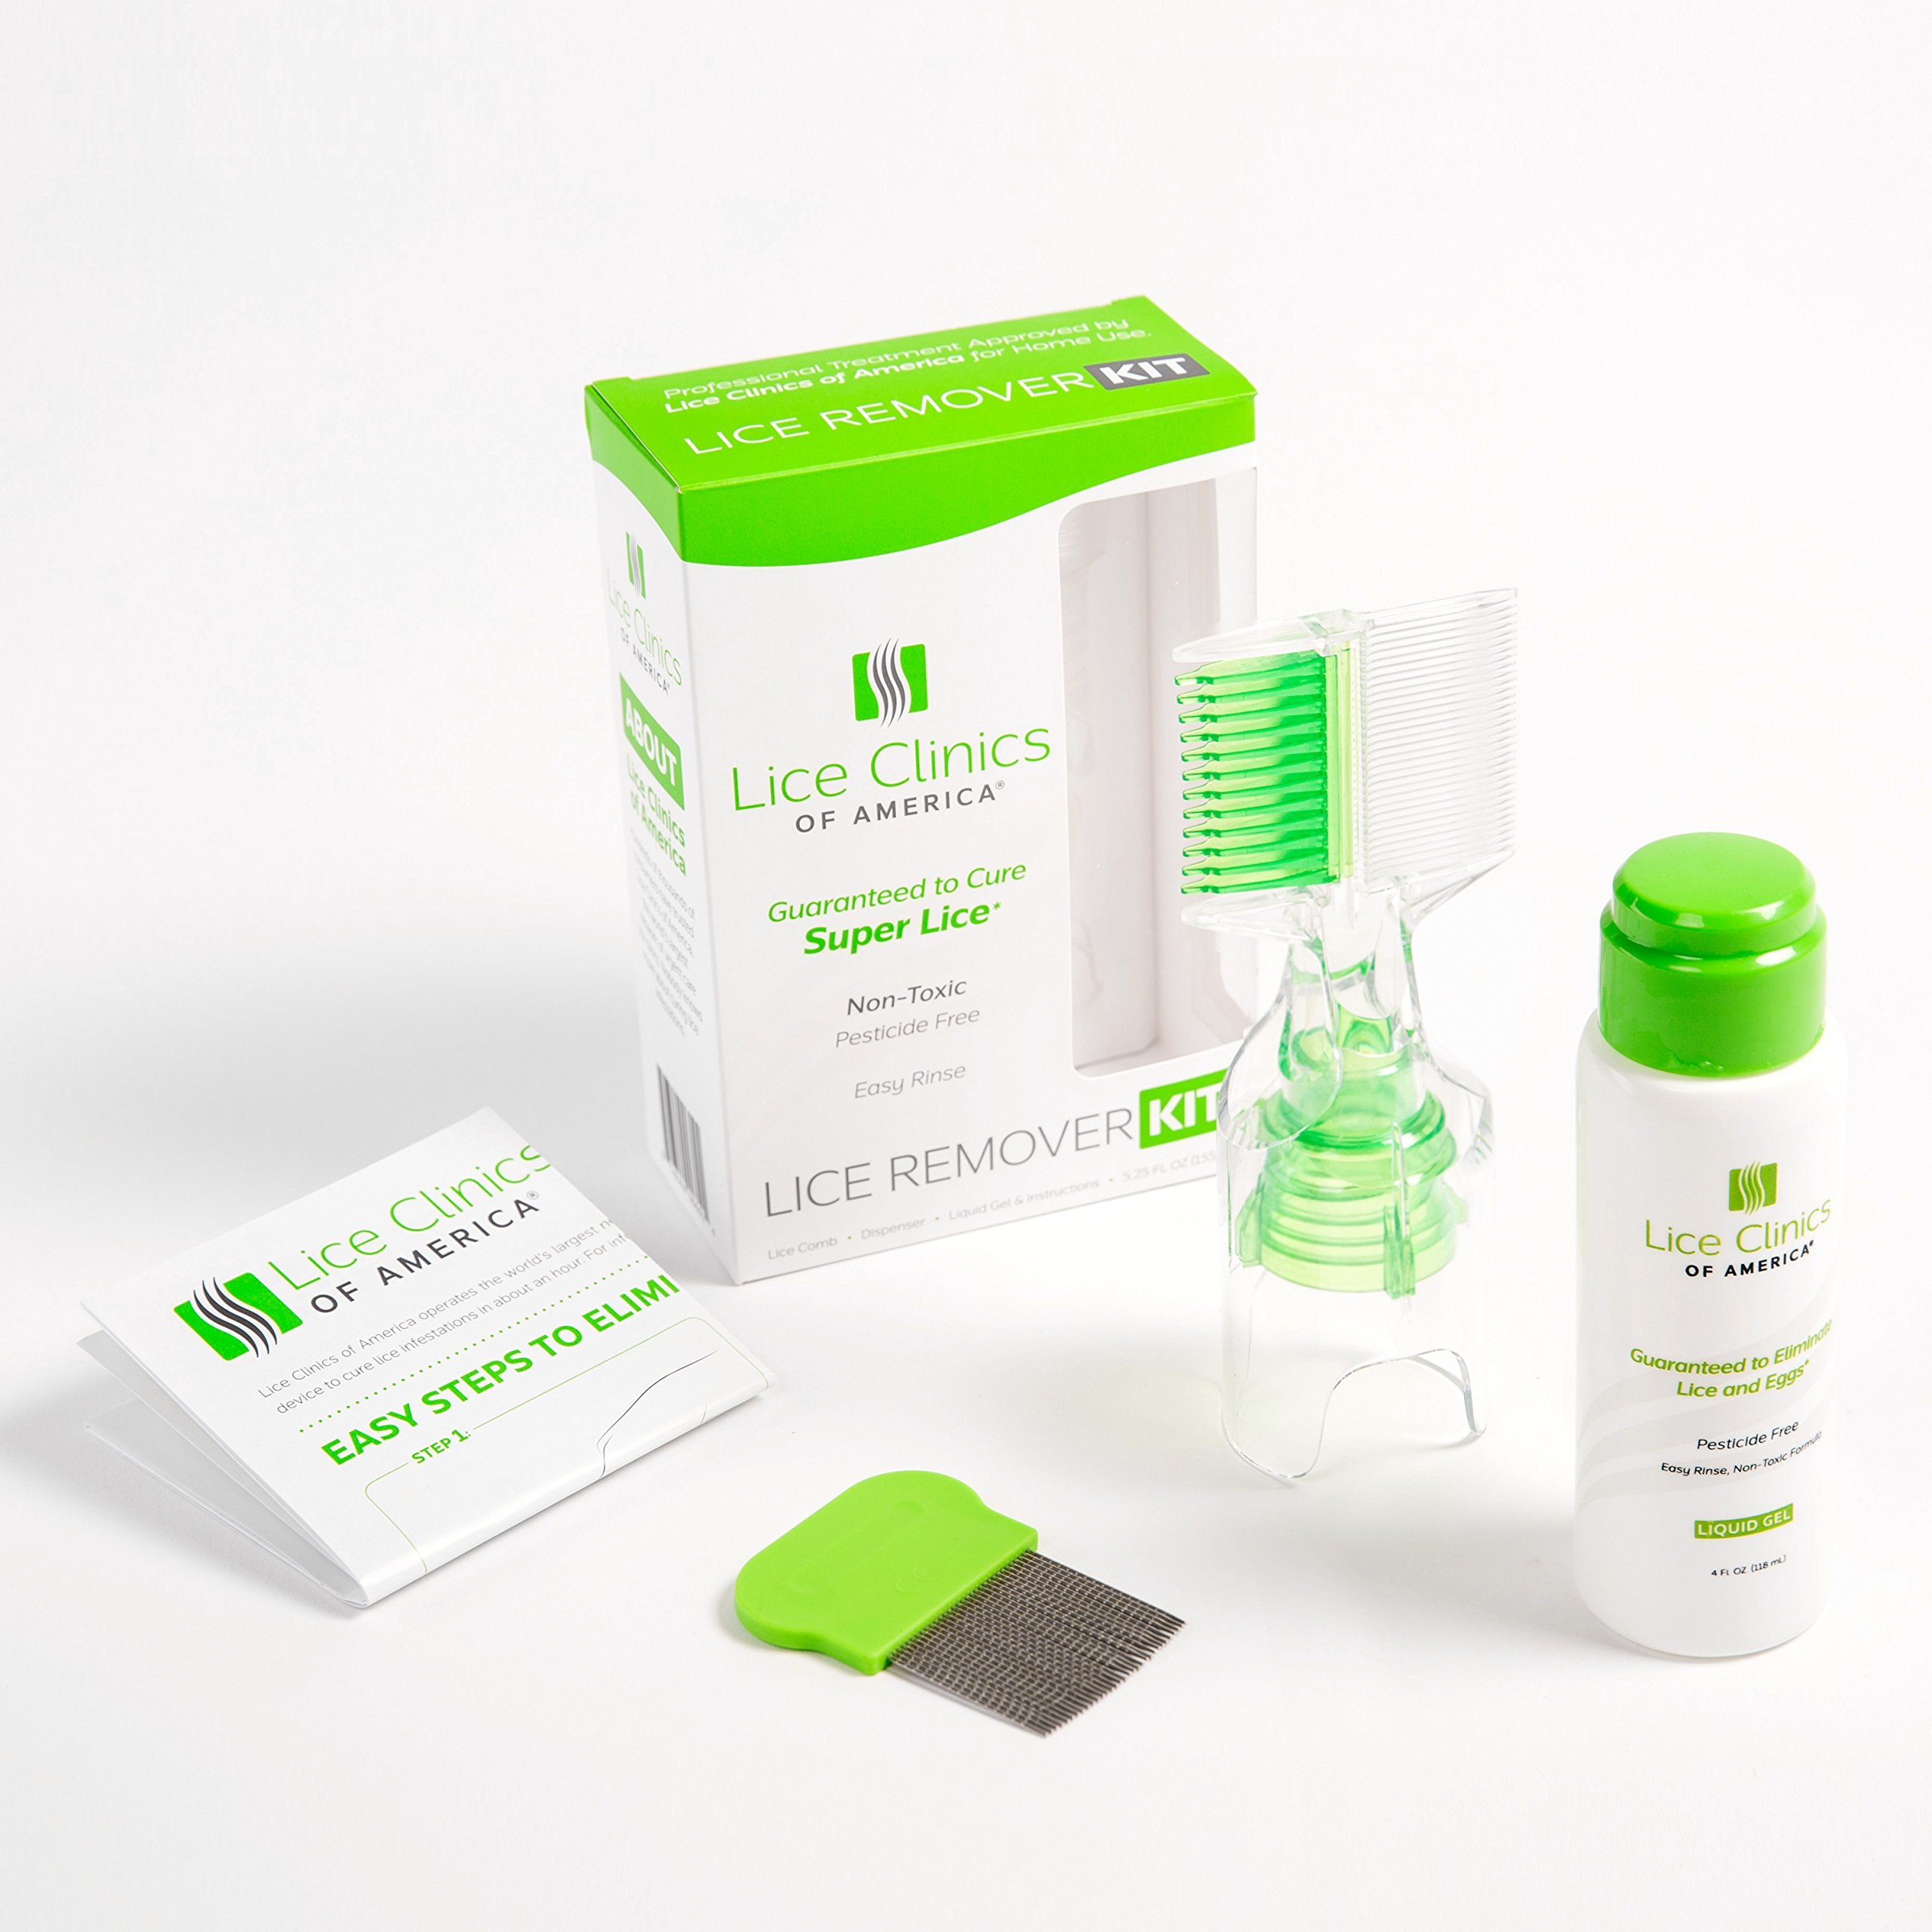 Lice Remover Kit Guaranteed to Cure Lice, Even Super Lice—Safe, Non-Toxic and Pesticide-Free